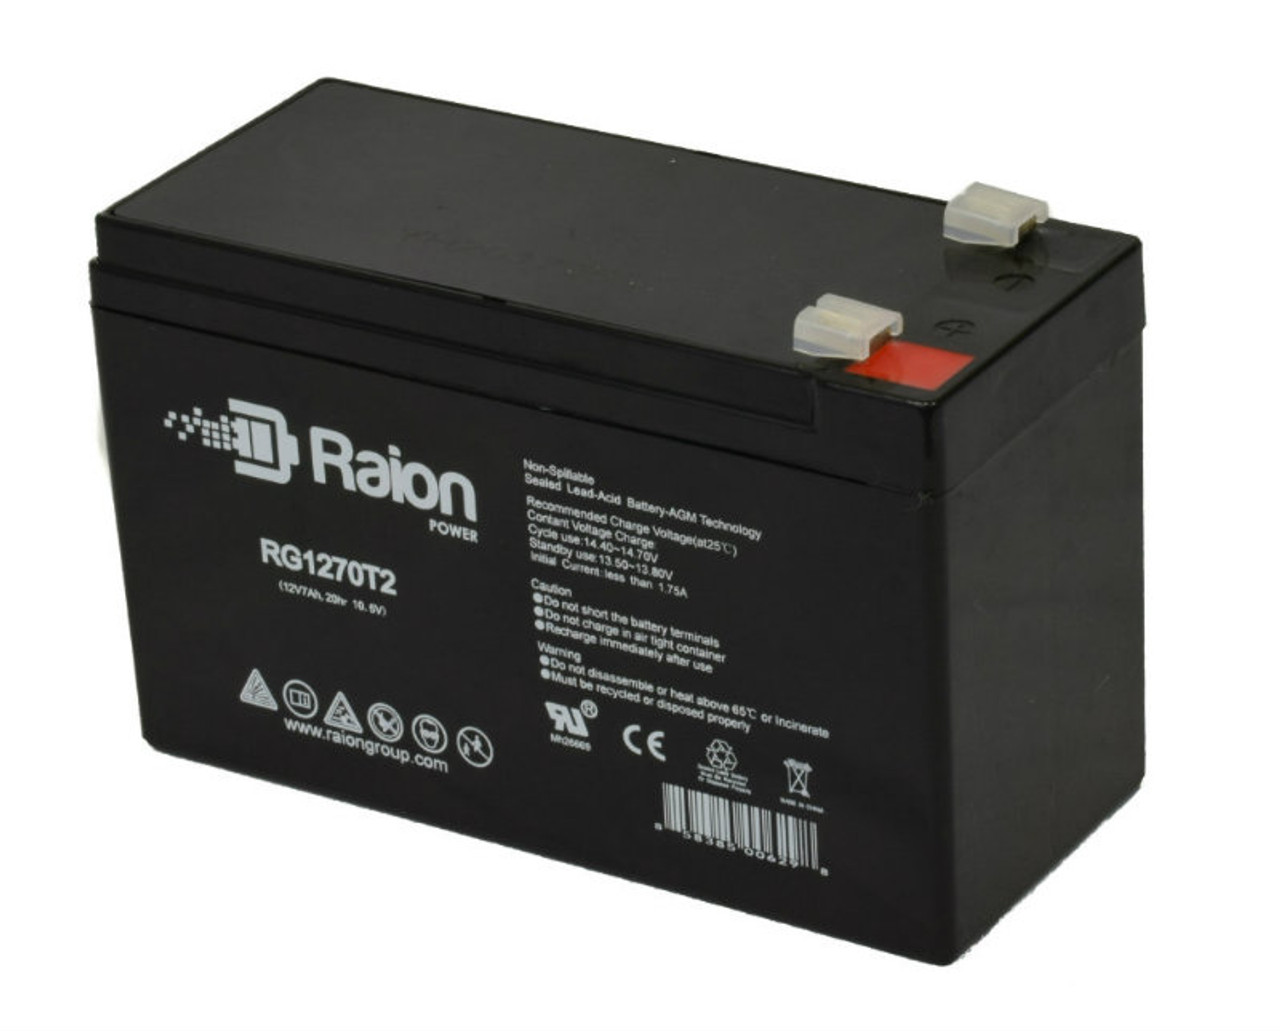 Raion Power RG1270T1 Replacement Battery for Alexander G1270